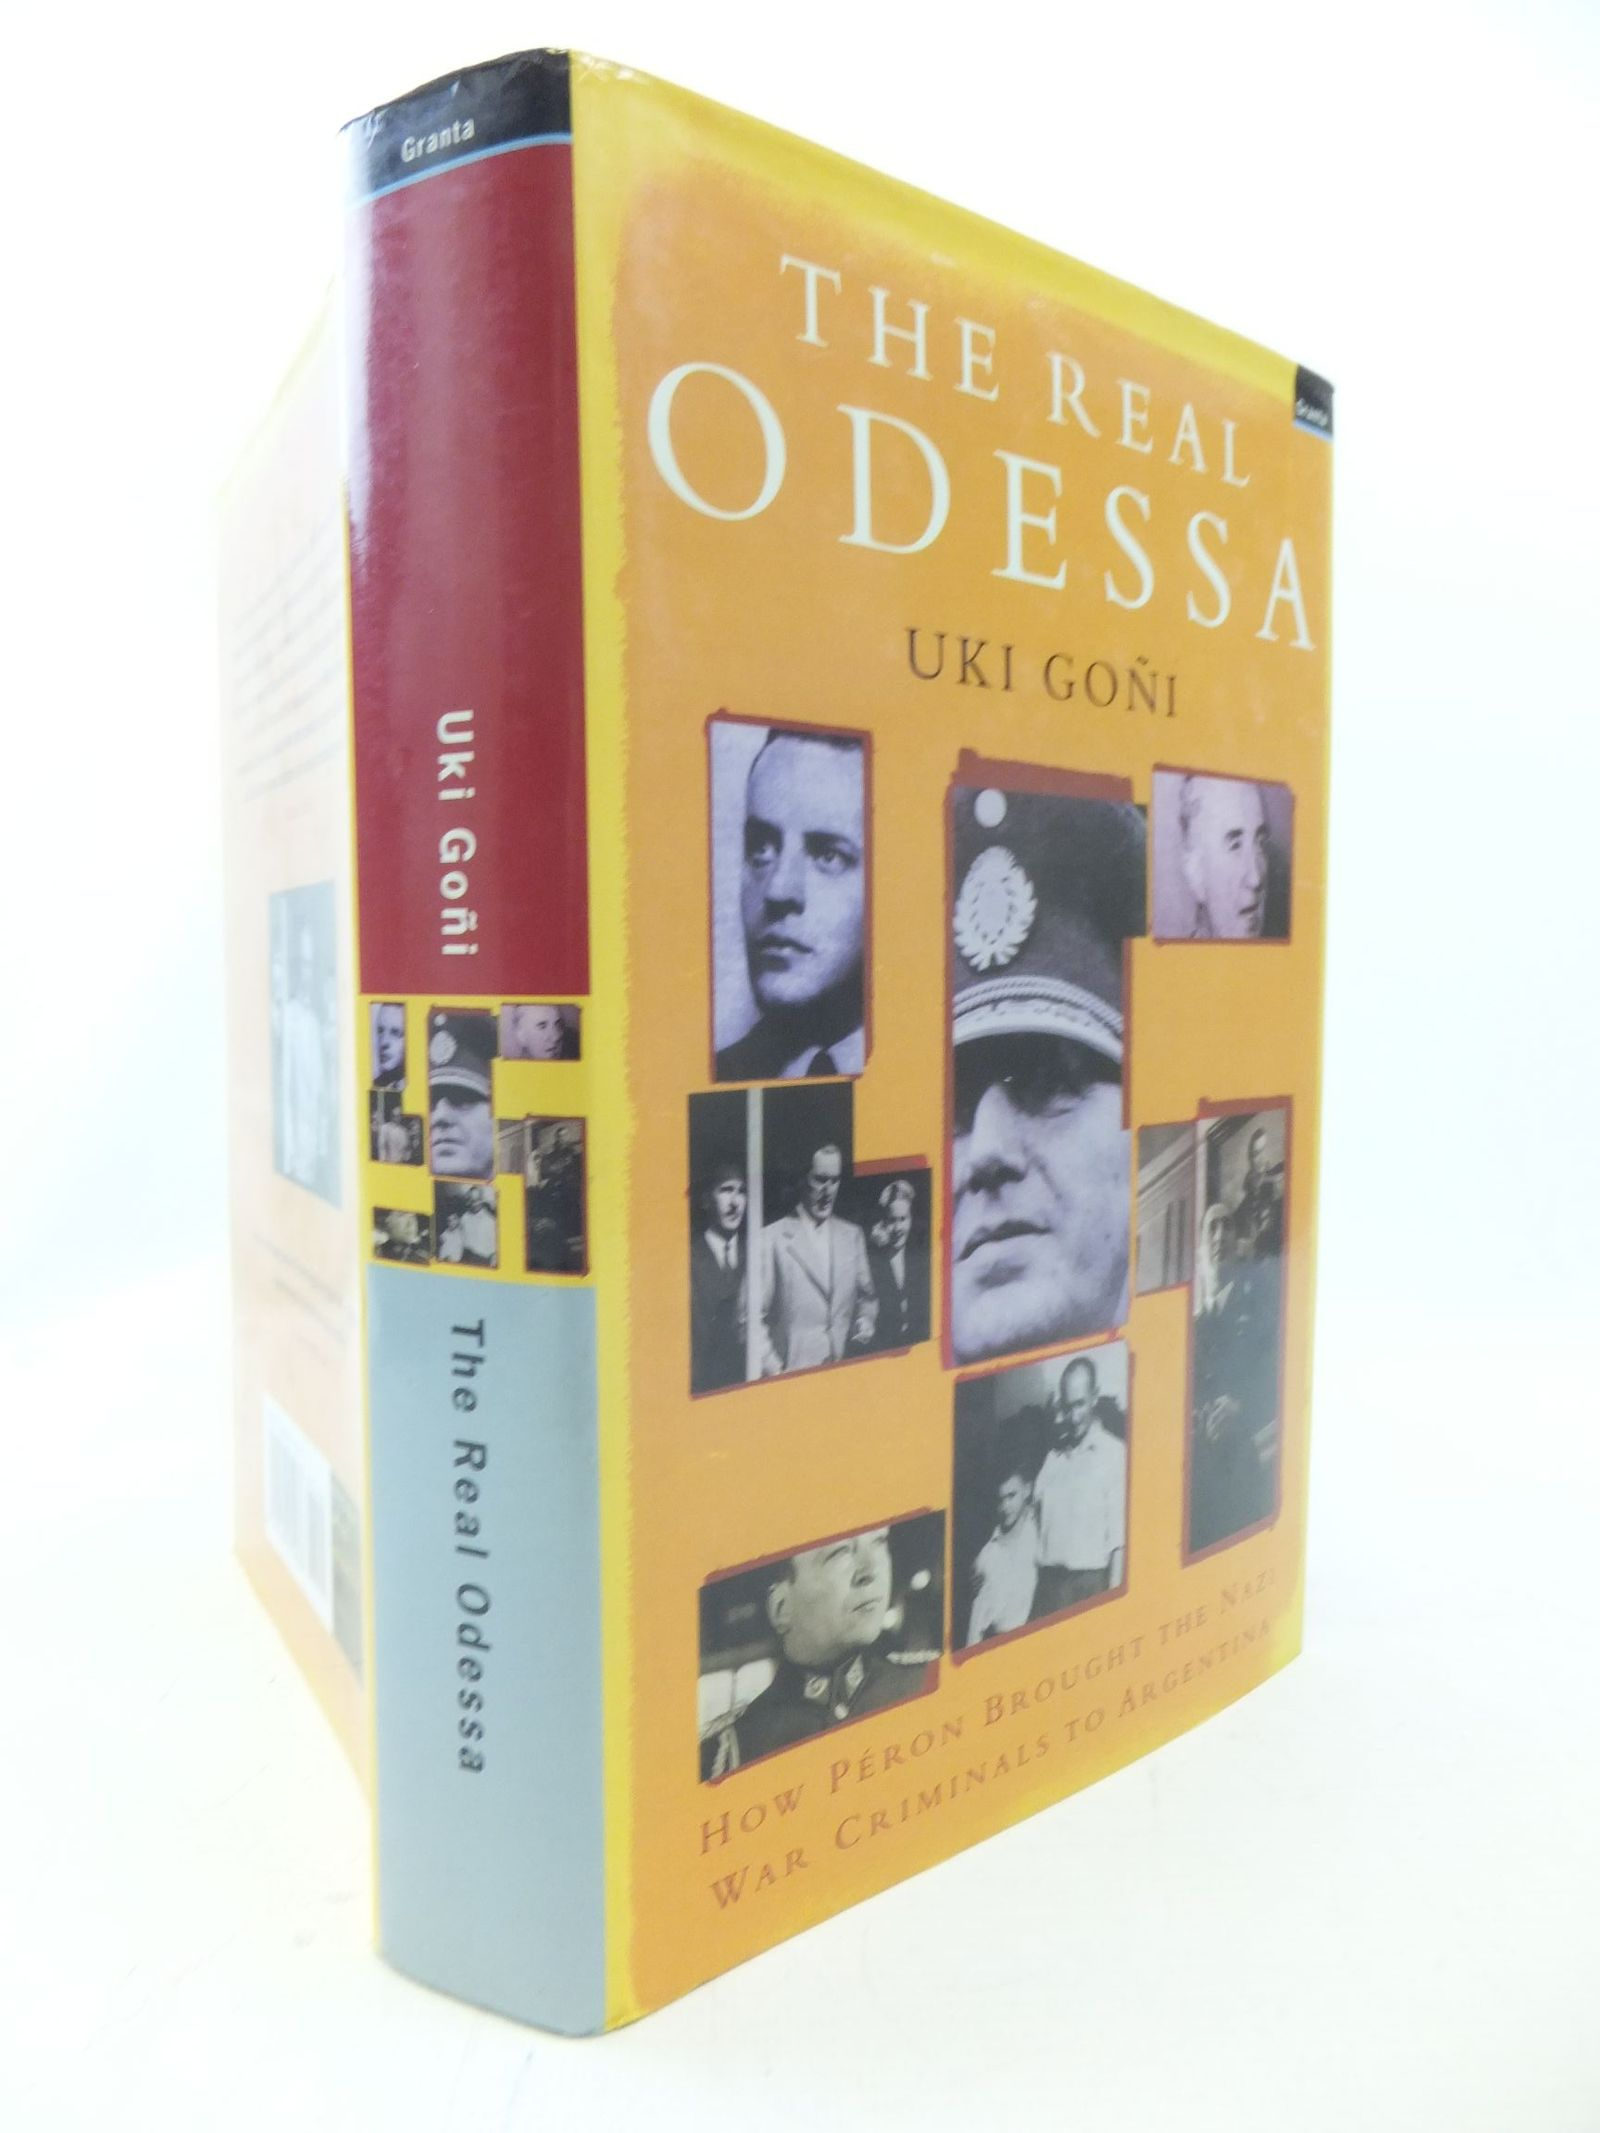 Photo of THE REAL ODESSA HOW PERON BROUGHT THE NAZI WAR CRIMINALS TO ARGENTINA written by Goni, Uki published by Granta Books (STOCK CODE: 1711523)  for sale by Stella & Rose's Books